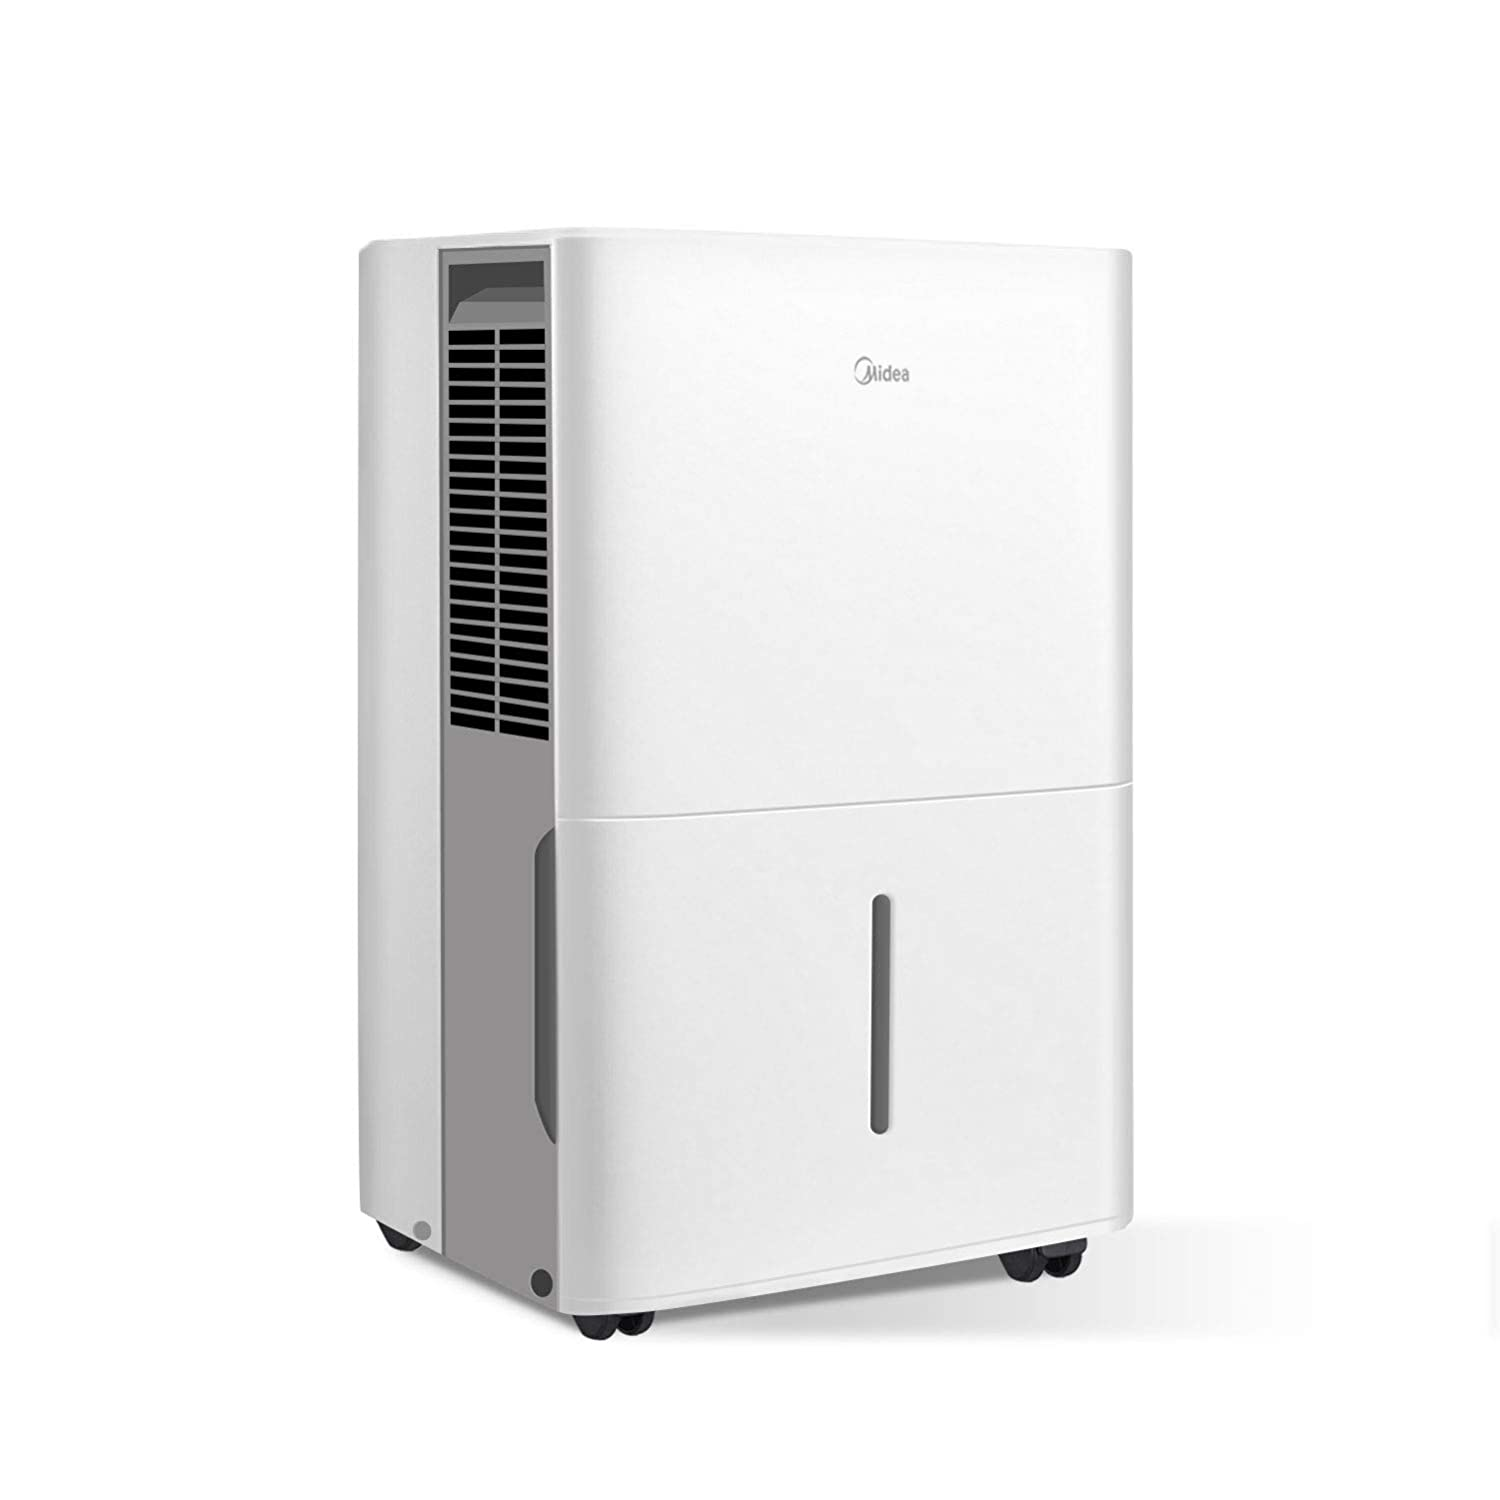 MIDEA MAD50C1YWS Dehumidifier 50 Pint with Reusable Filter, Ideal for basements, bedroom, bathroom, with bucket of 1.6 gallon, Pint (35 Pint New DOE), white